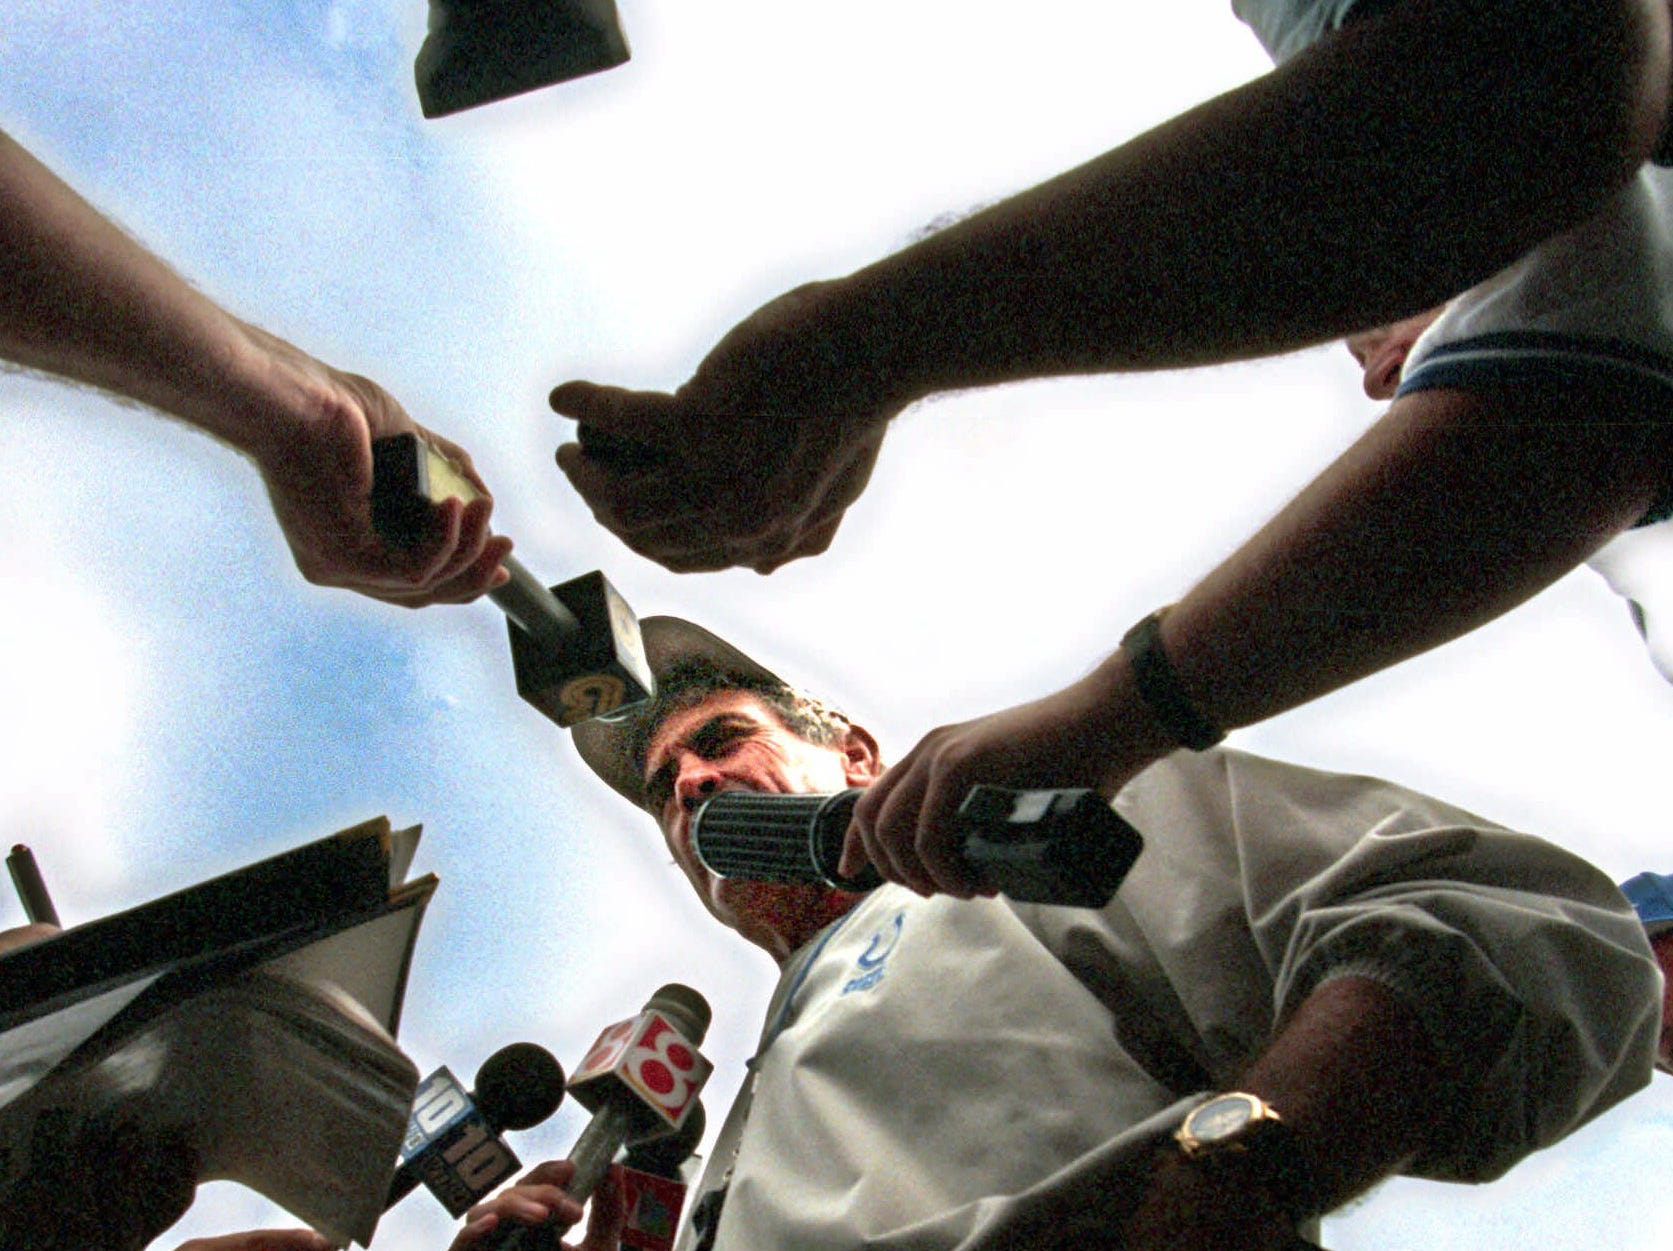 Indianapolis Colts coach Jim  Mora is surrounded by microphones and television cameras after the last day of training camp at the Rose - Hulman Institute of Technology, in Terre Haute, Ind., Thursday, Aug. 19, 1999. Mora said that he was generally satisfied with the progress of the team during the camp.